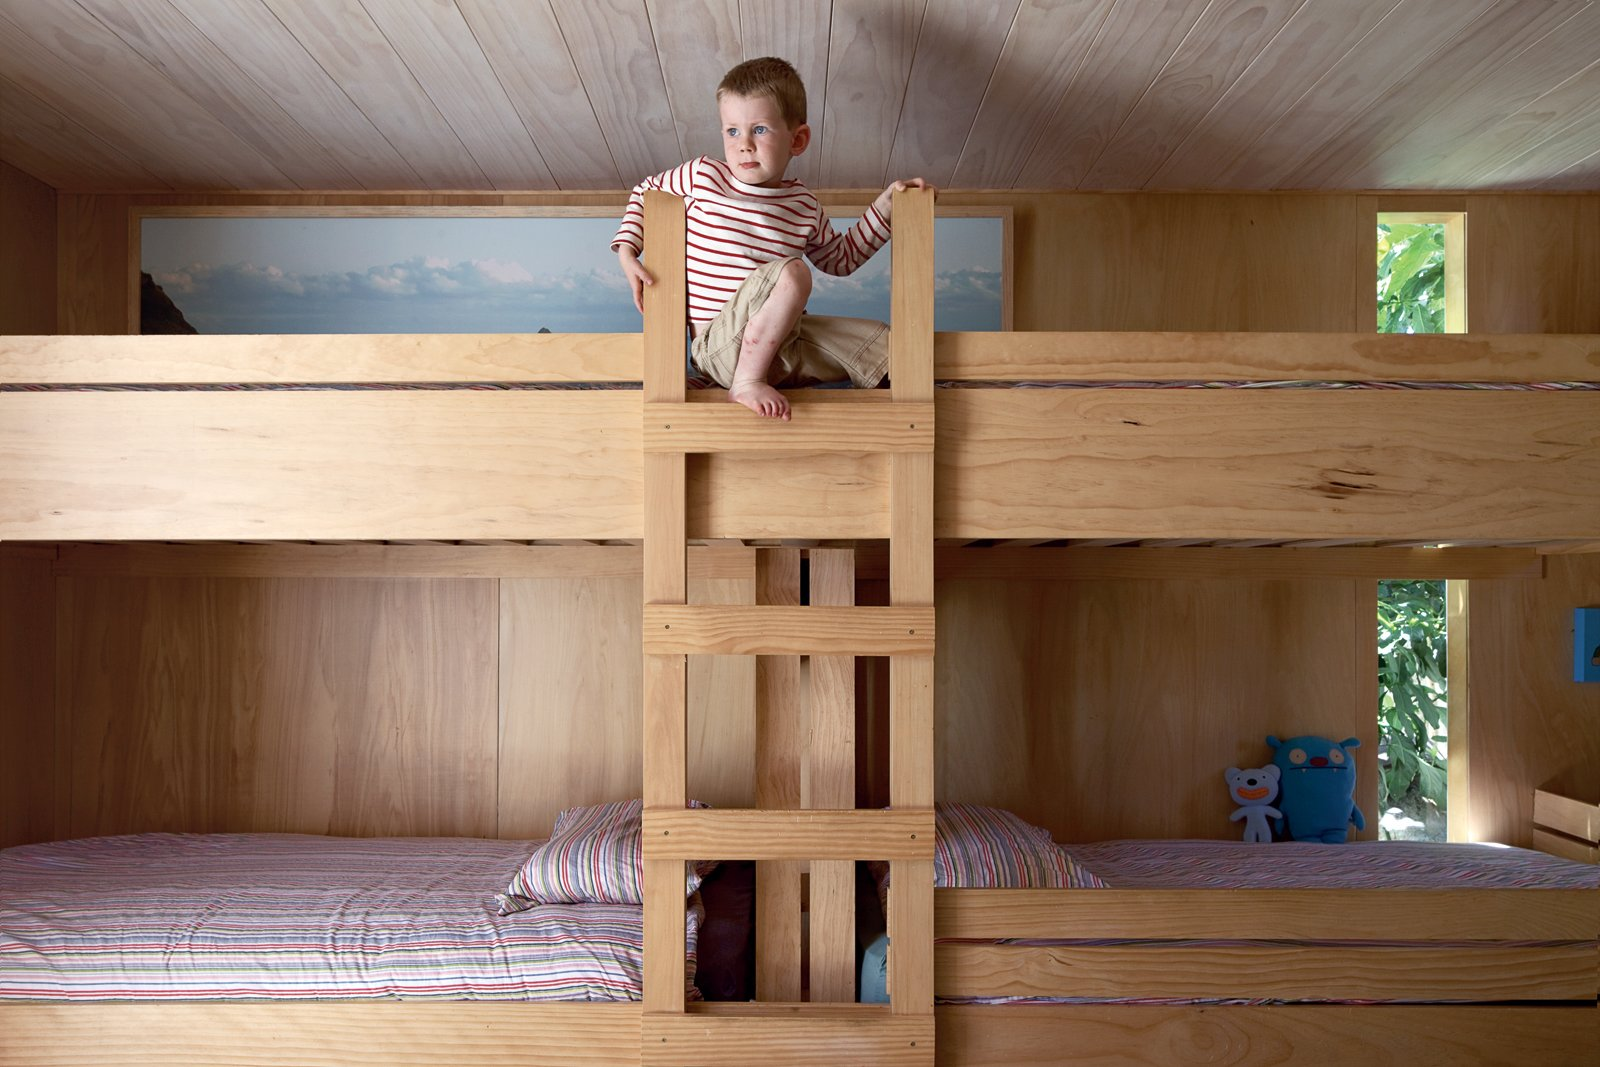 Kids Room, Bedroom Room Type, and Bunks In the kids' room, Seamus climbs the bunk beds he shares with his siblings.  Photo 10 of 11 in The Great Compression